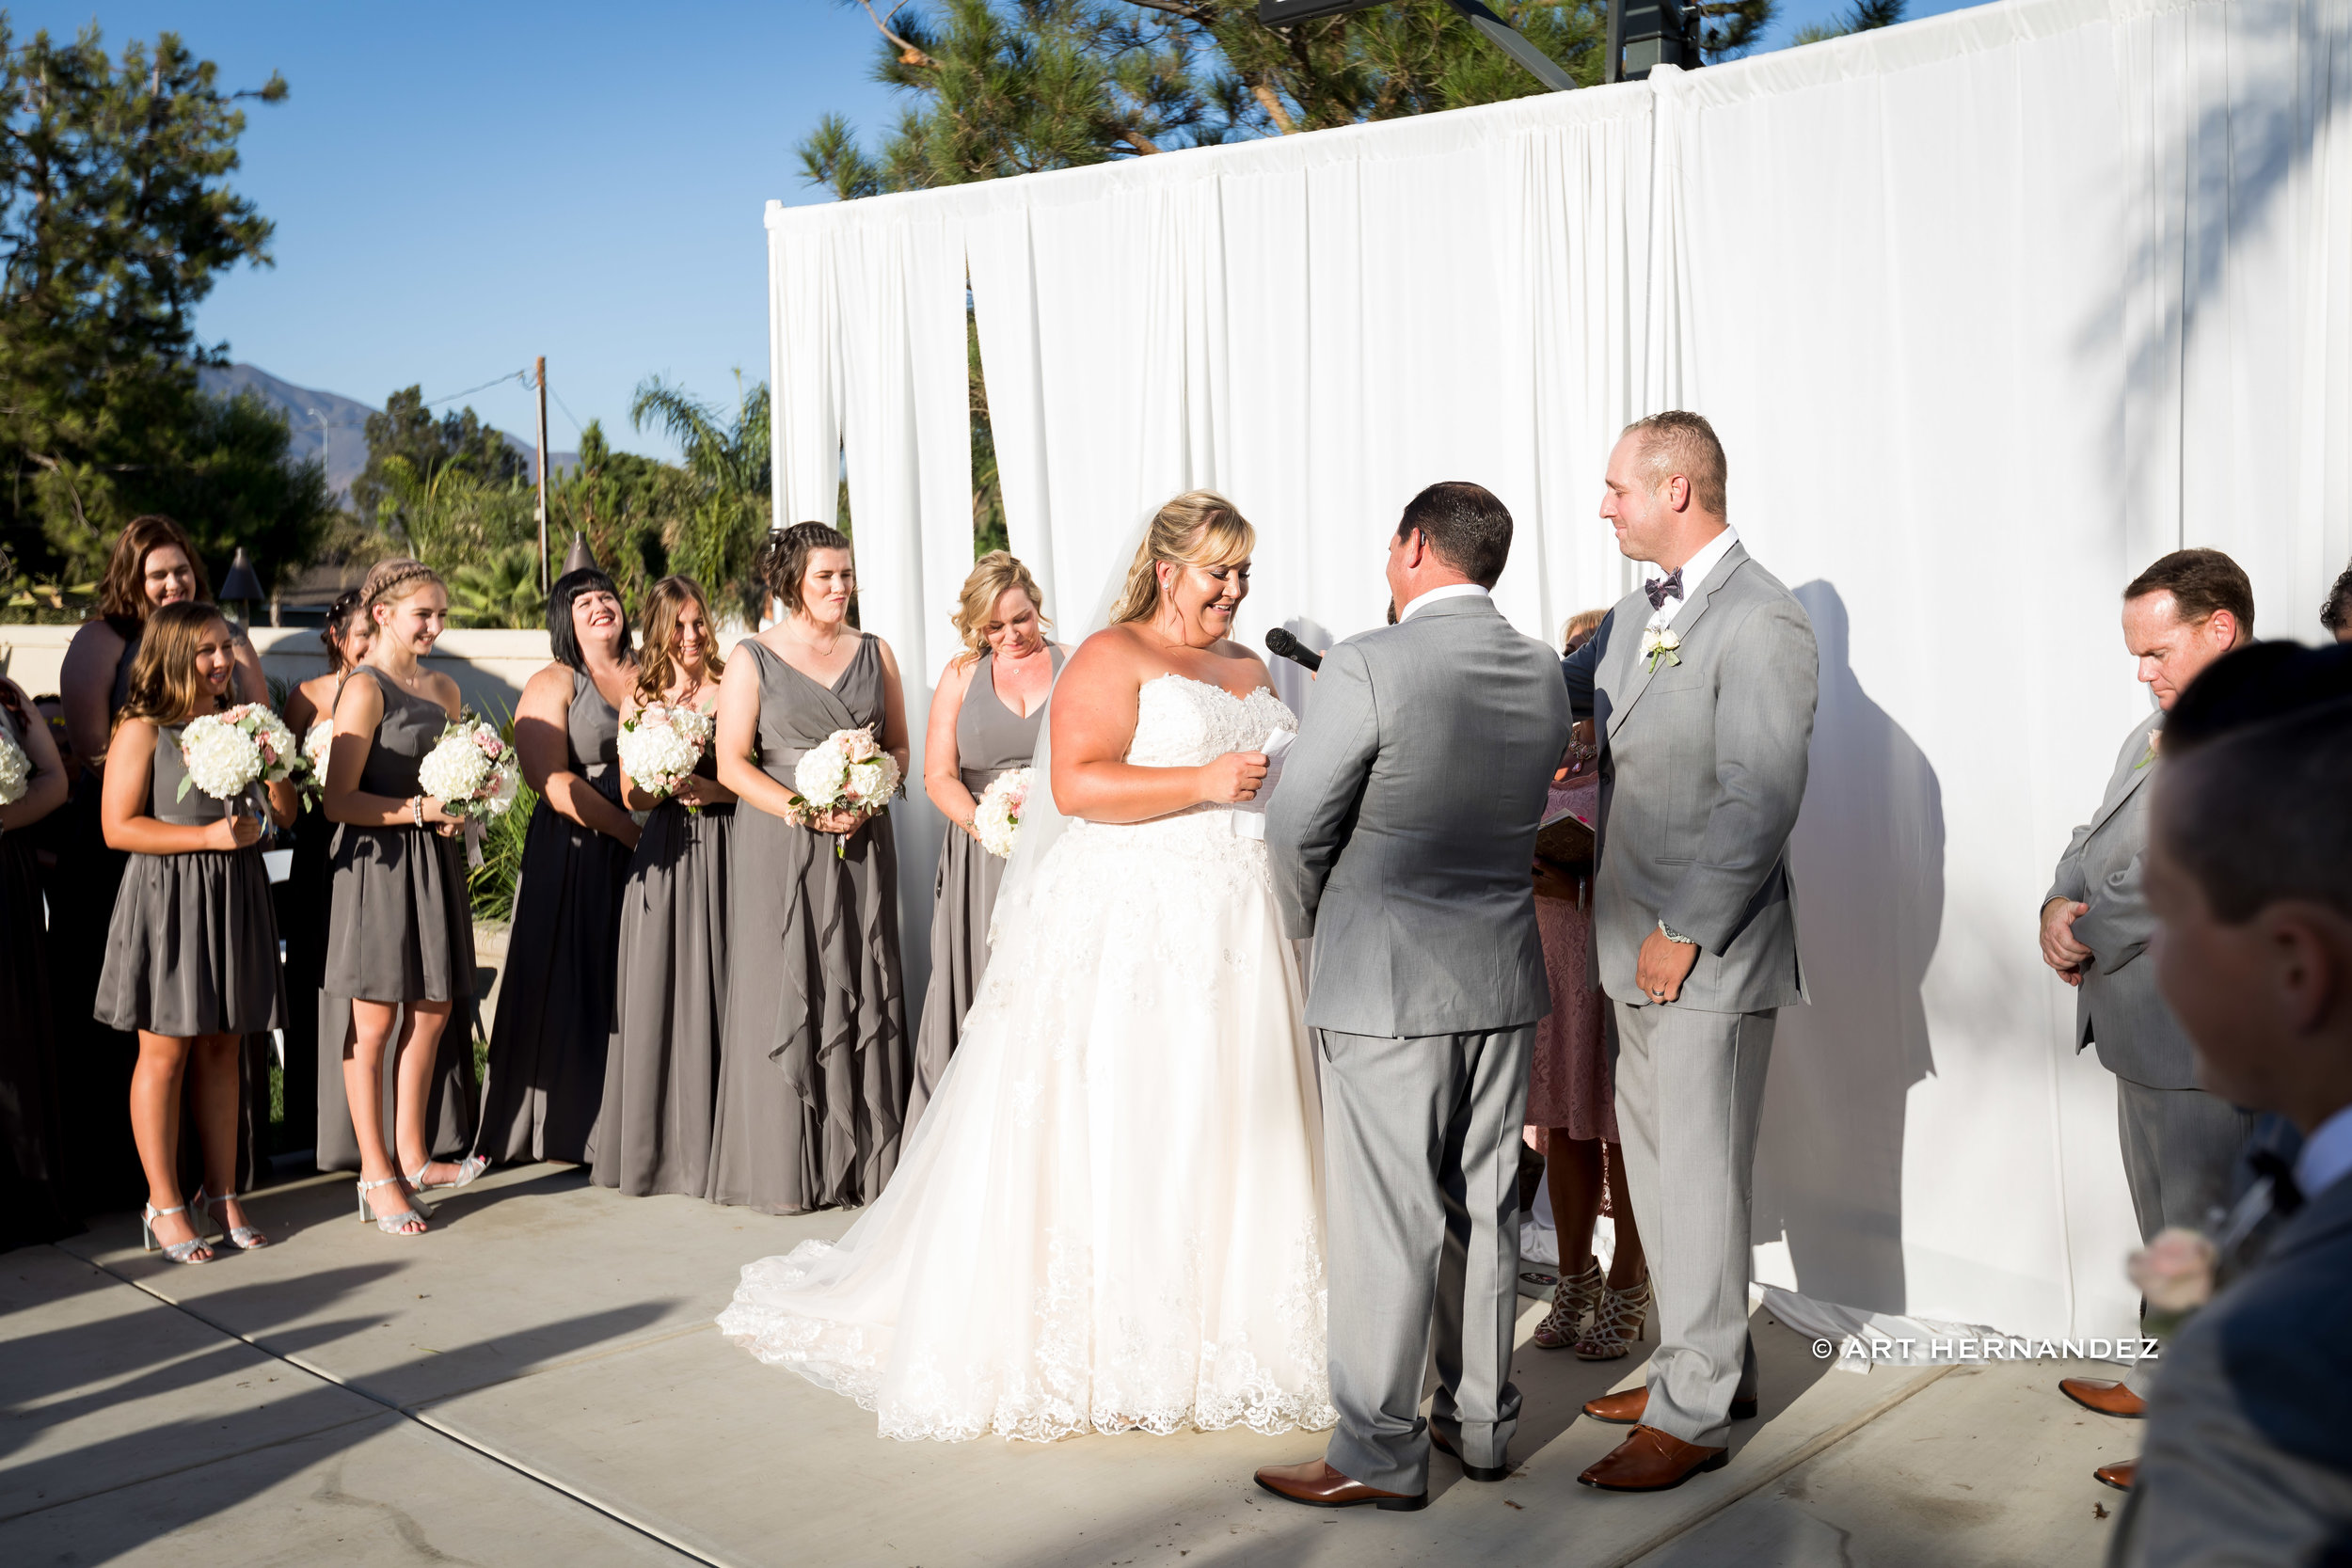 It's a beautiful wedding of Staci & Chris held at the residence of Ryan and Danielle Orr. This very special day was attended by their family and friends.  Venue: Rancho Cucamonga, CA